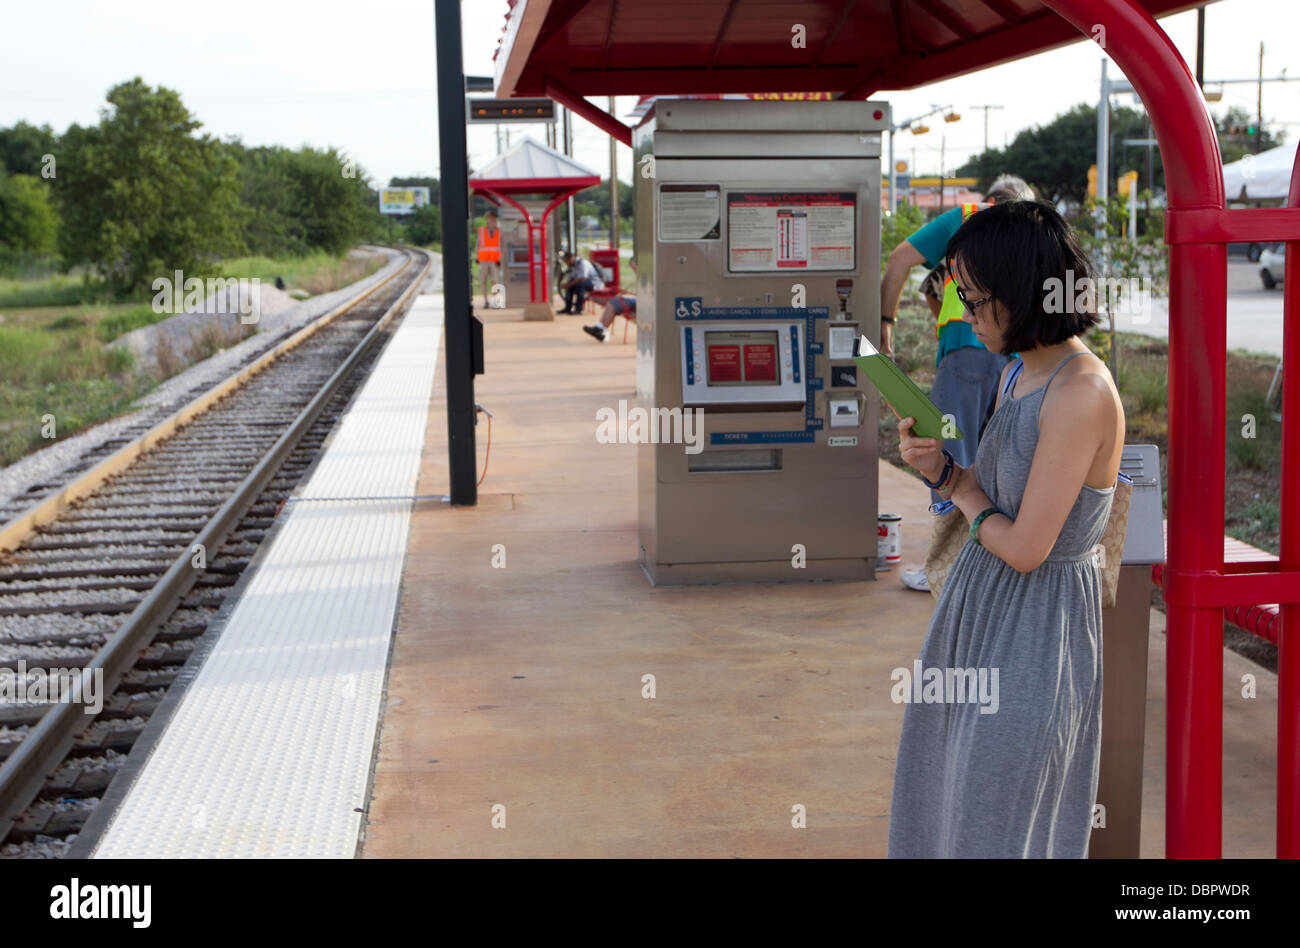 Femme se lit sur son ebook reader Kindle alors qu'elle attend un transport public metro rail train sur son trajet Photo Stock